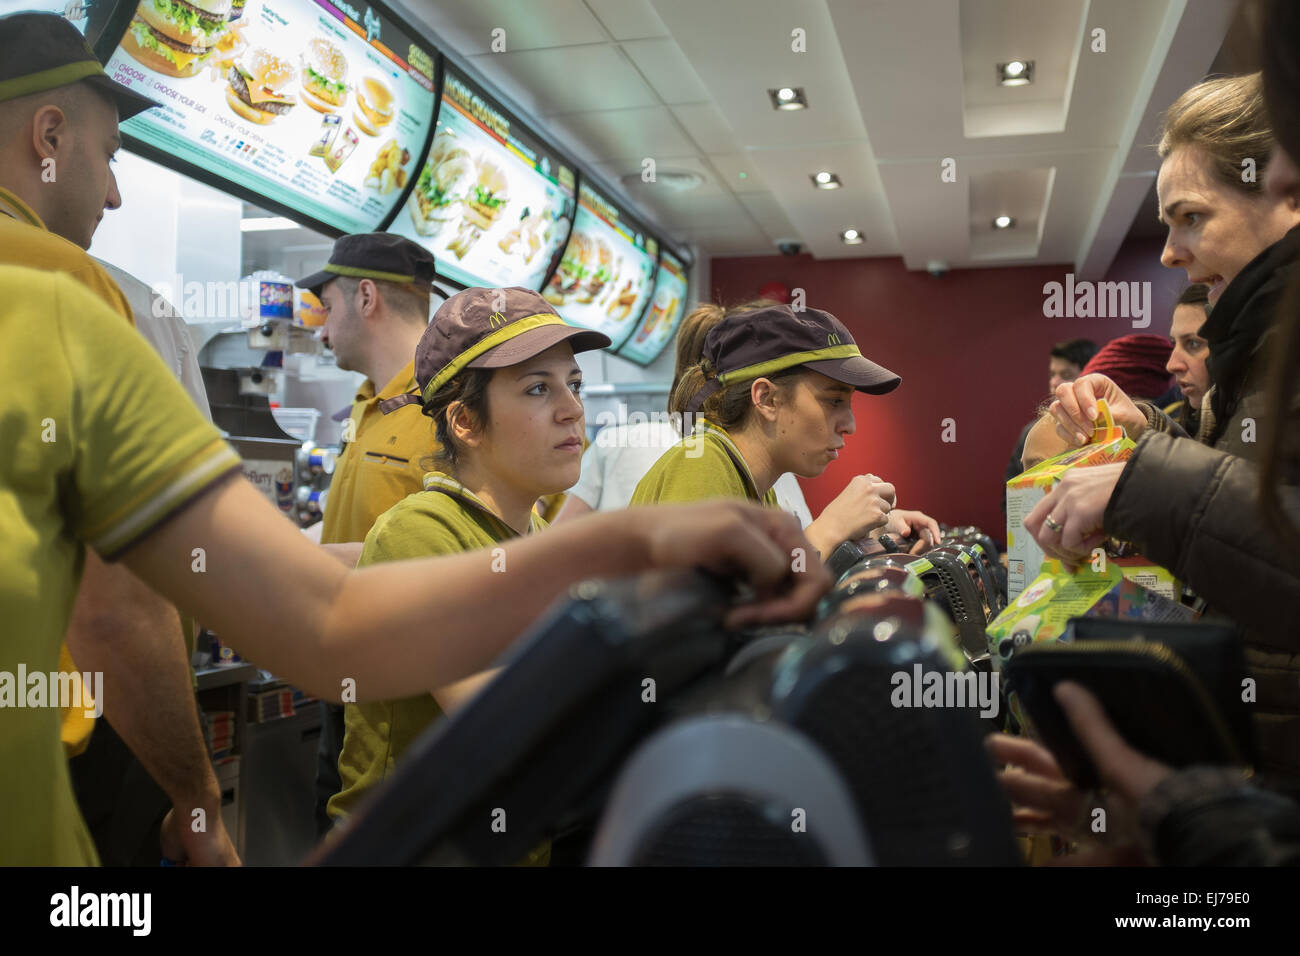 A branch of McDonald's busy lunchtime. - Stock Image